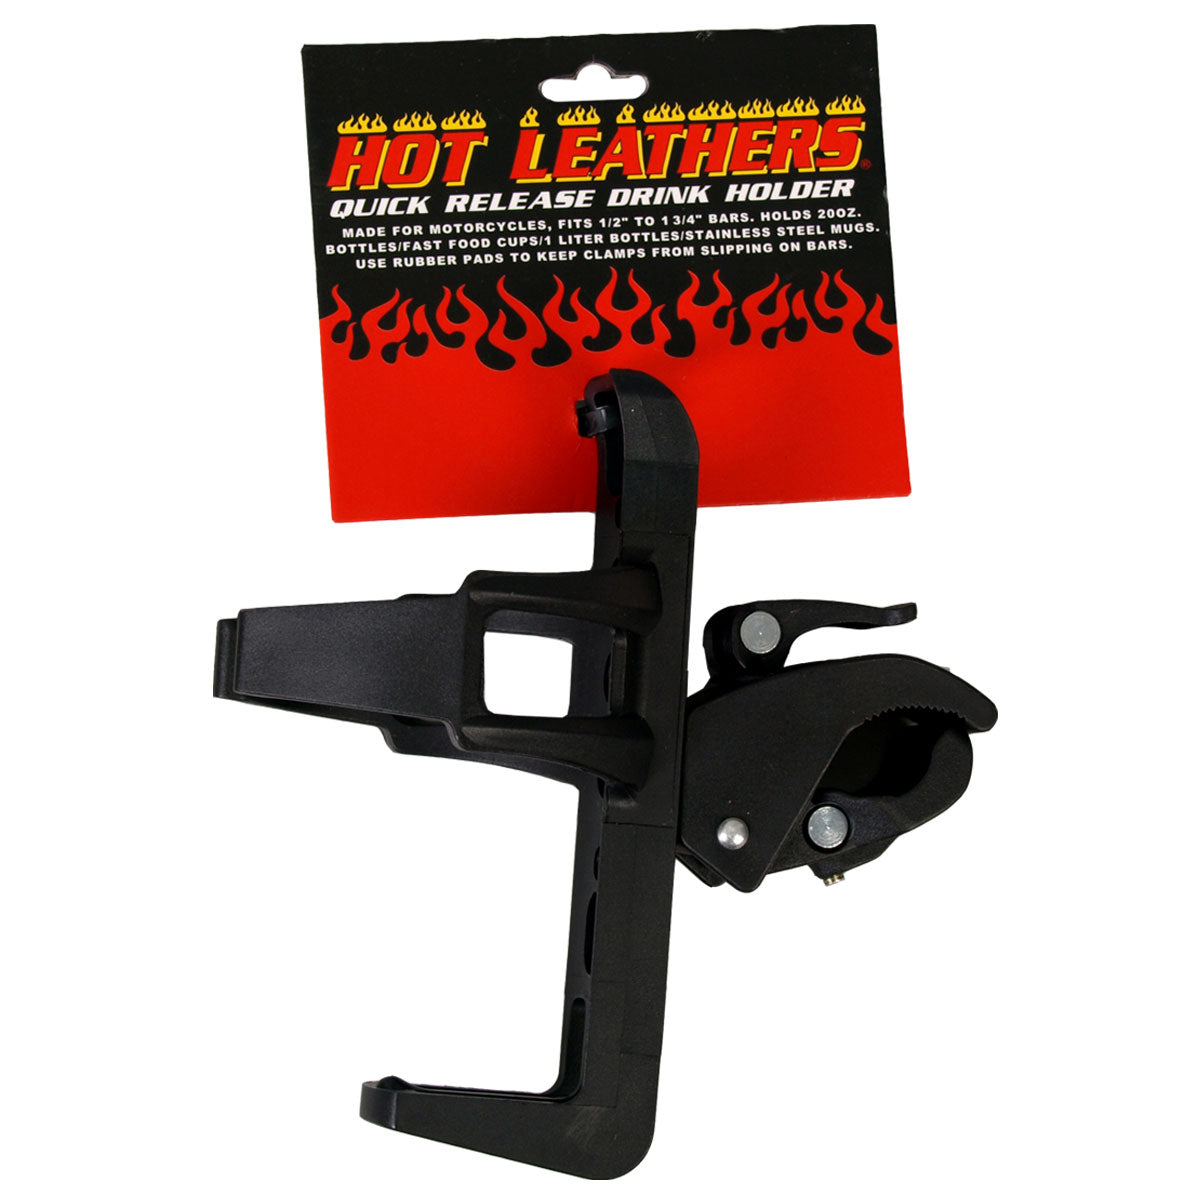 Hot Leathers MPA4012 Black Quick Release Drink - Cup Holder